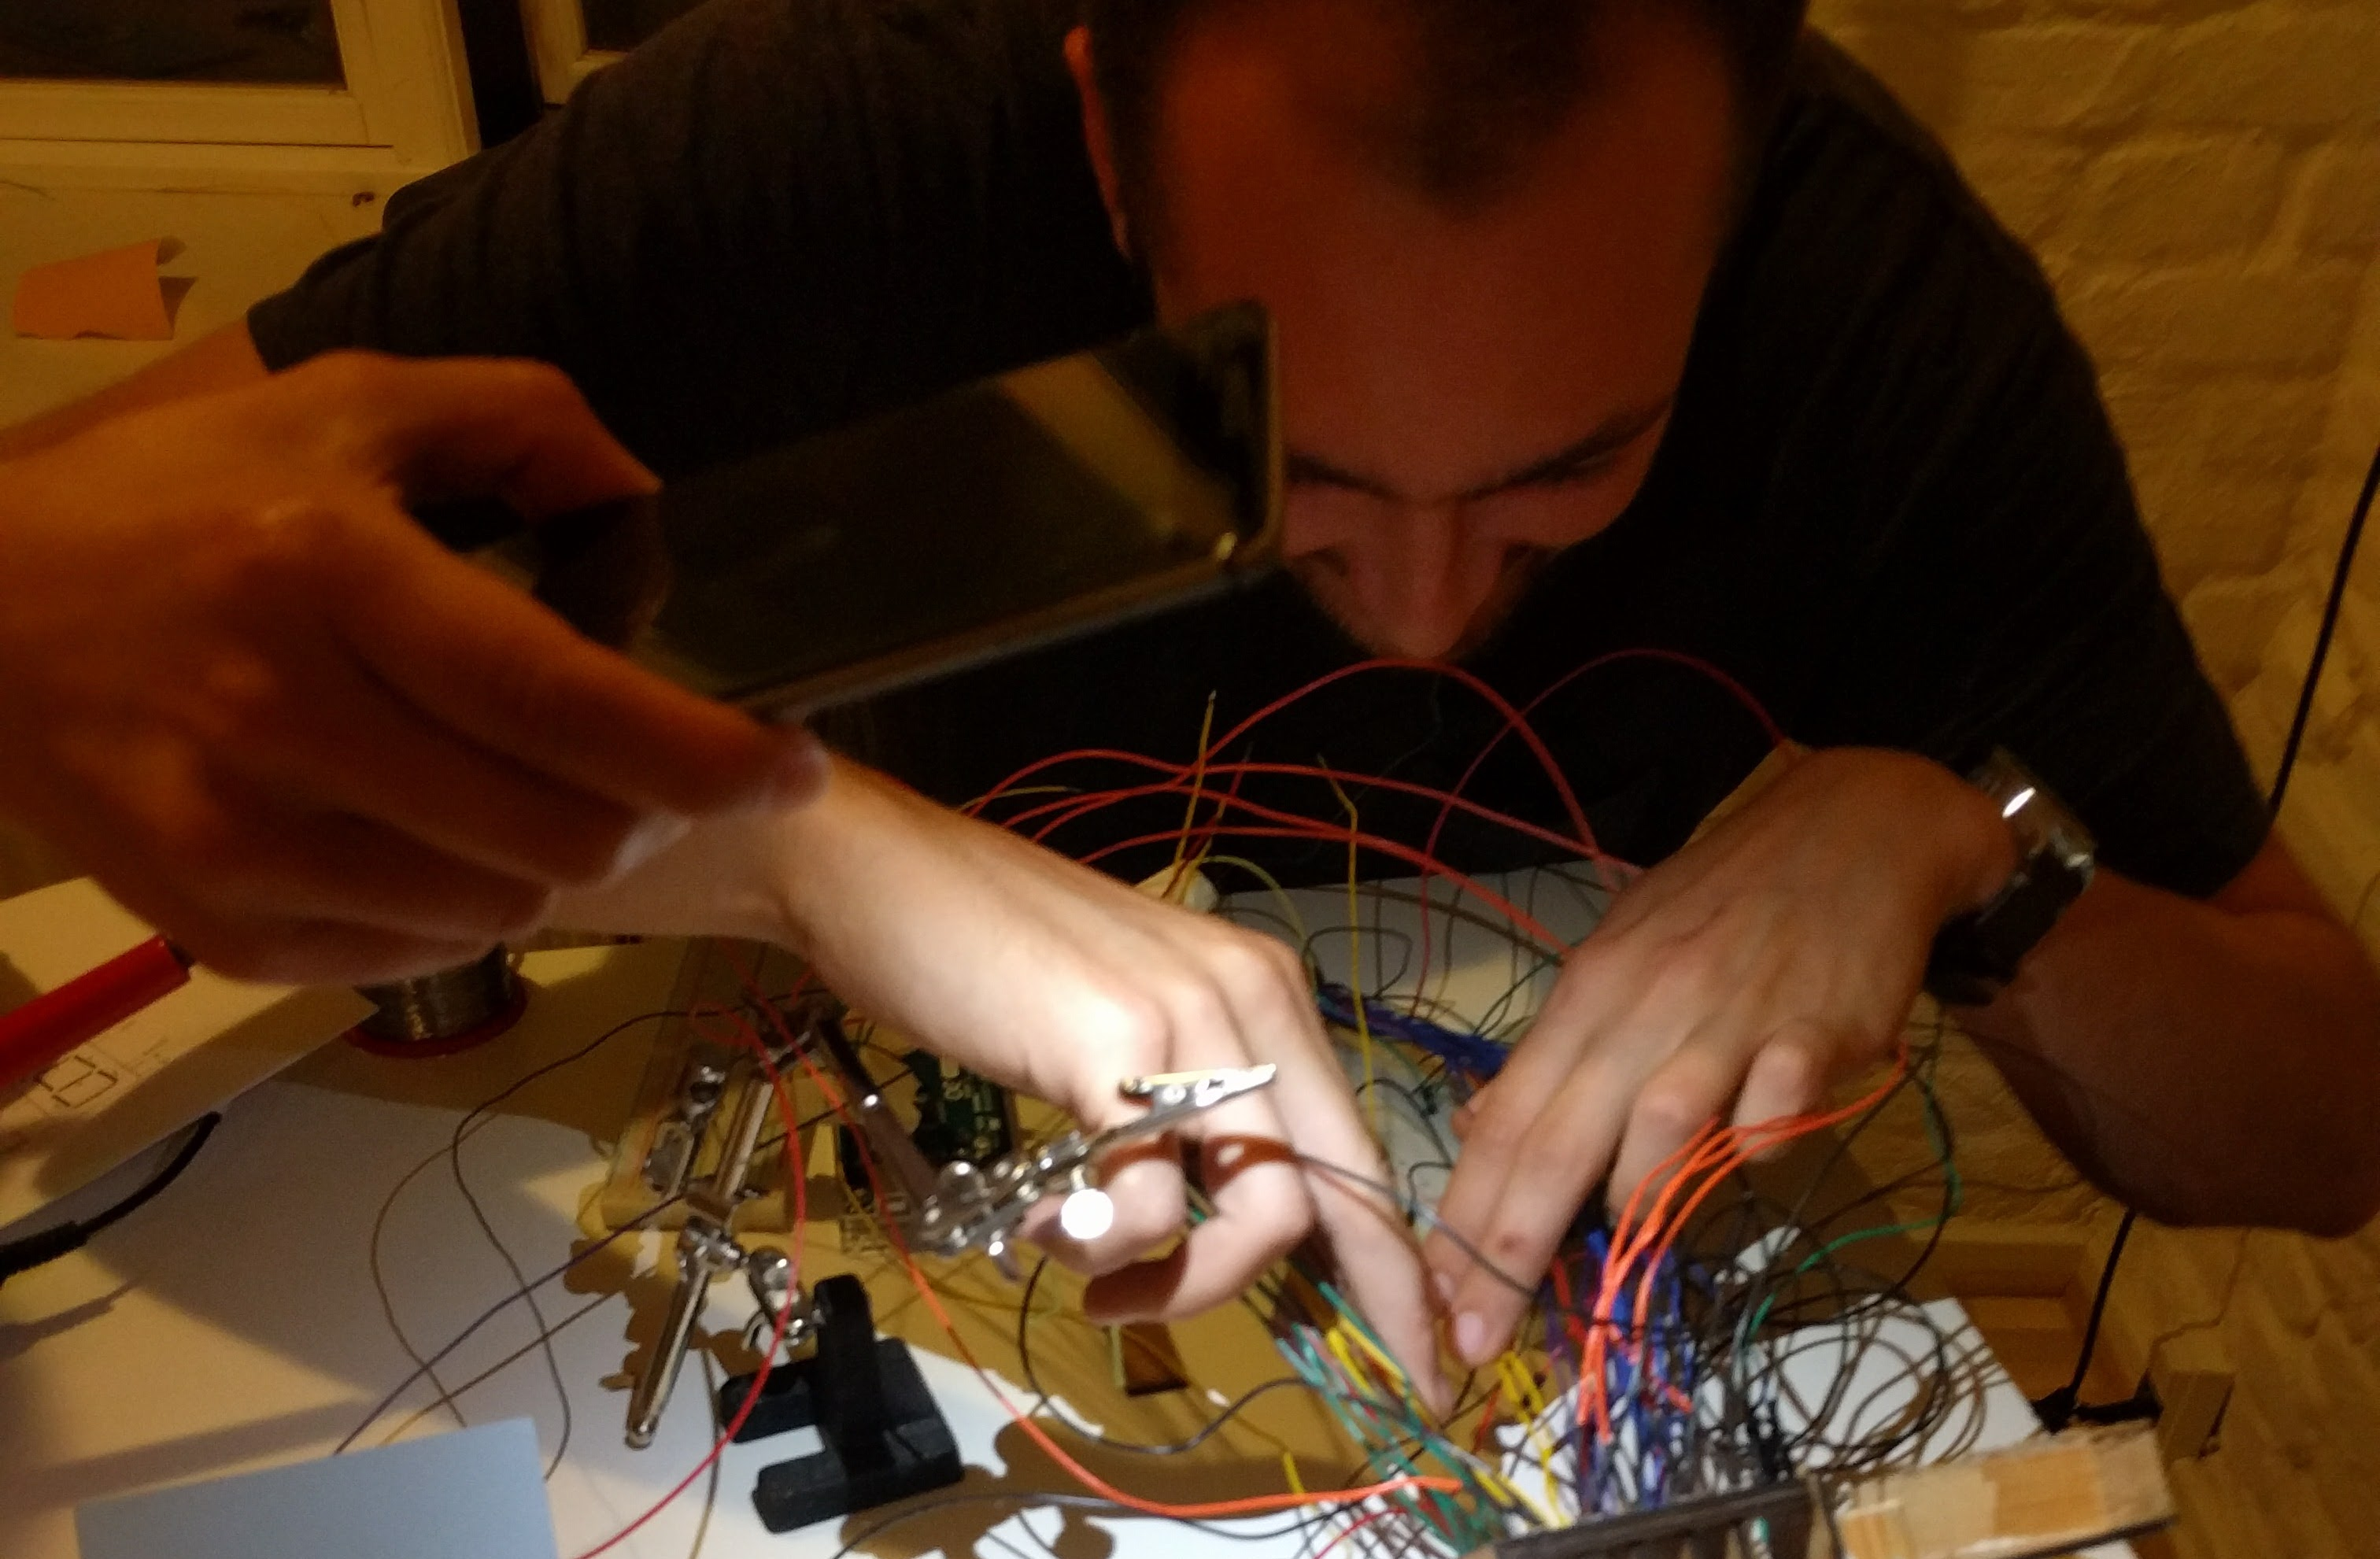 me attempting to squeeze the soldering iron between many wires